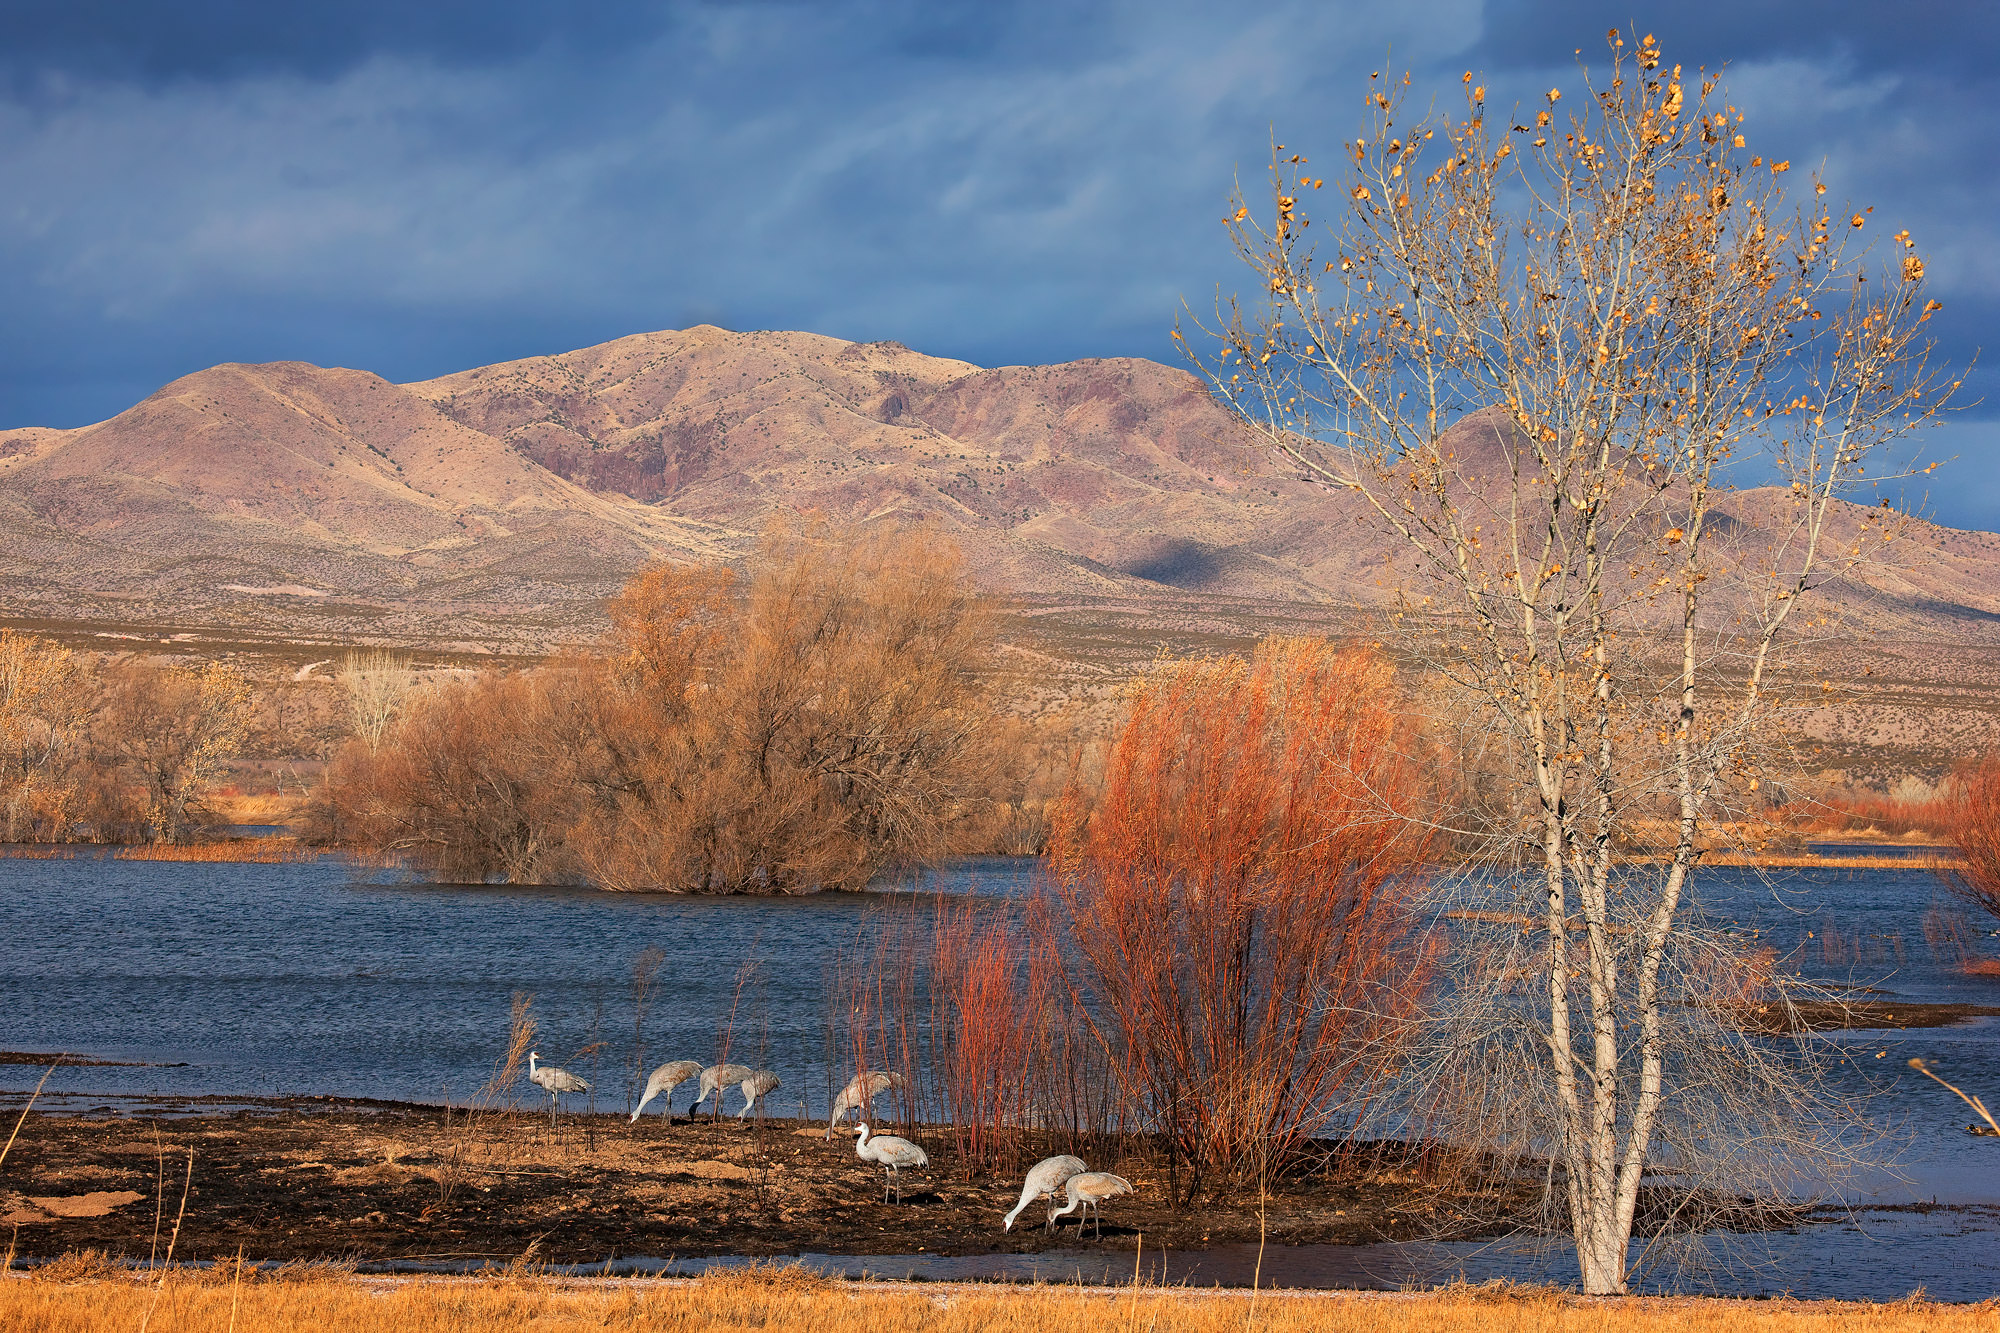 Sandhill Crane Fine Art Photography A Limited Edition photograph of Sand Hill Cranes feeding in the morning at Bosque del Apache...